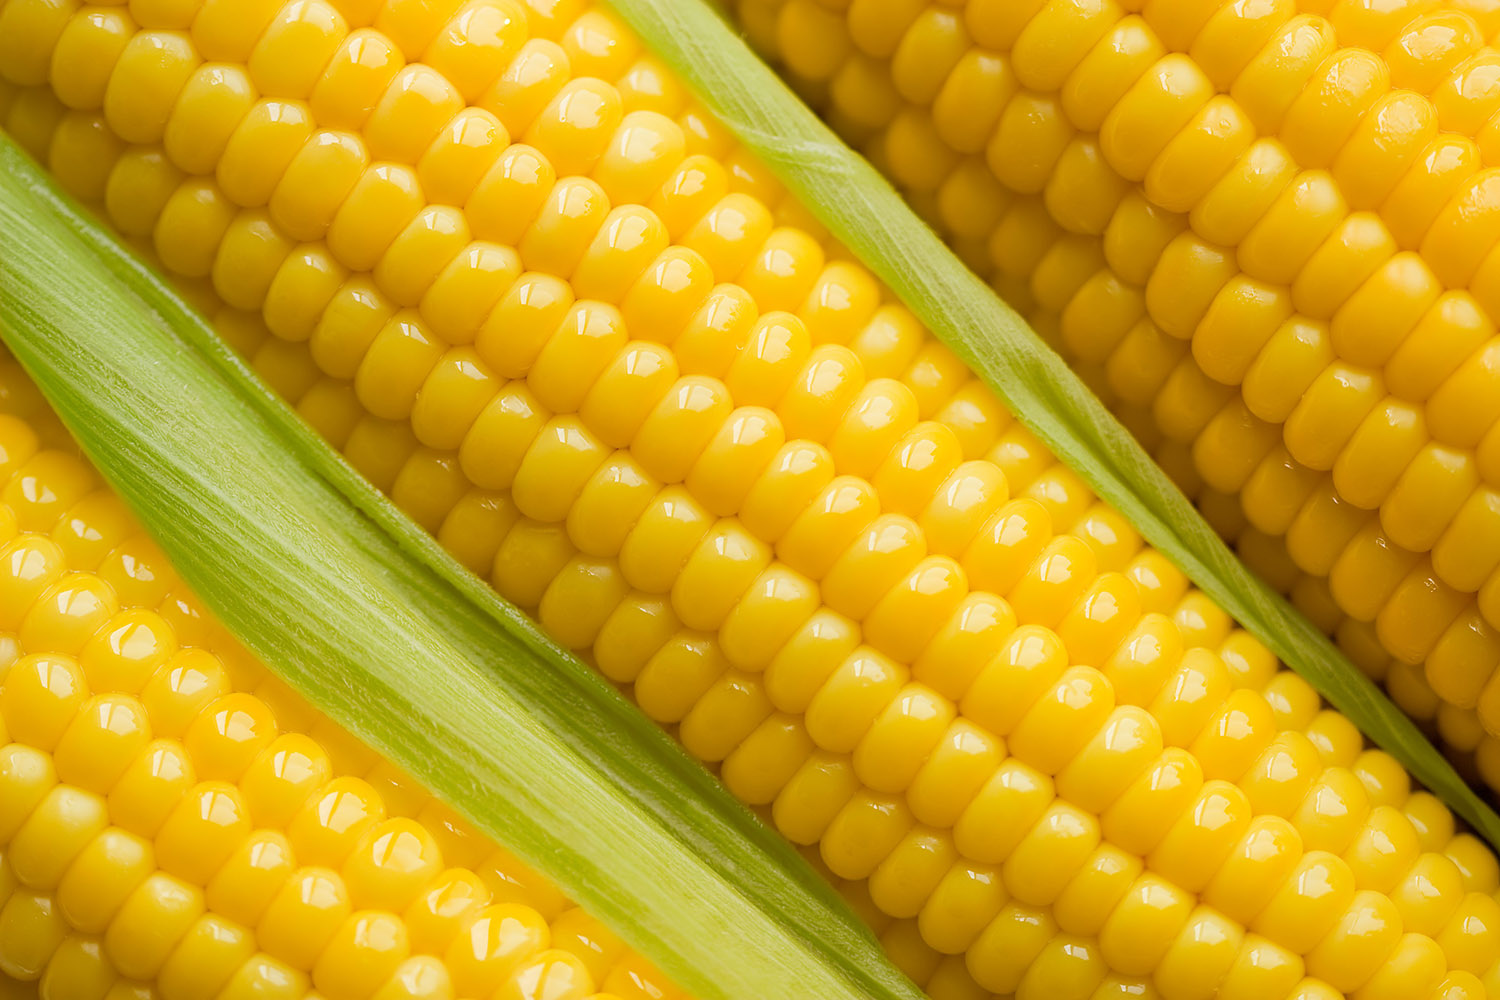 Corn, beautiful corn